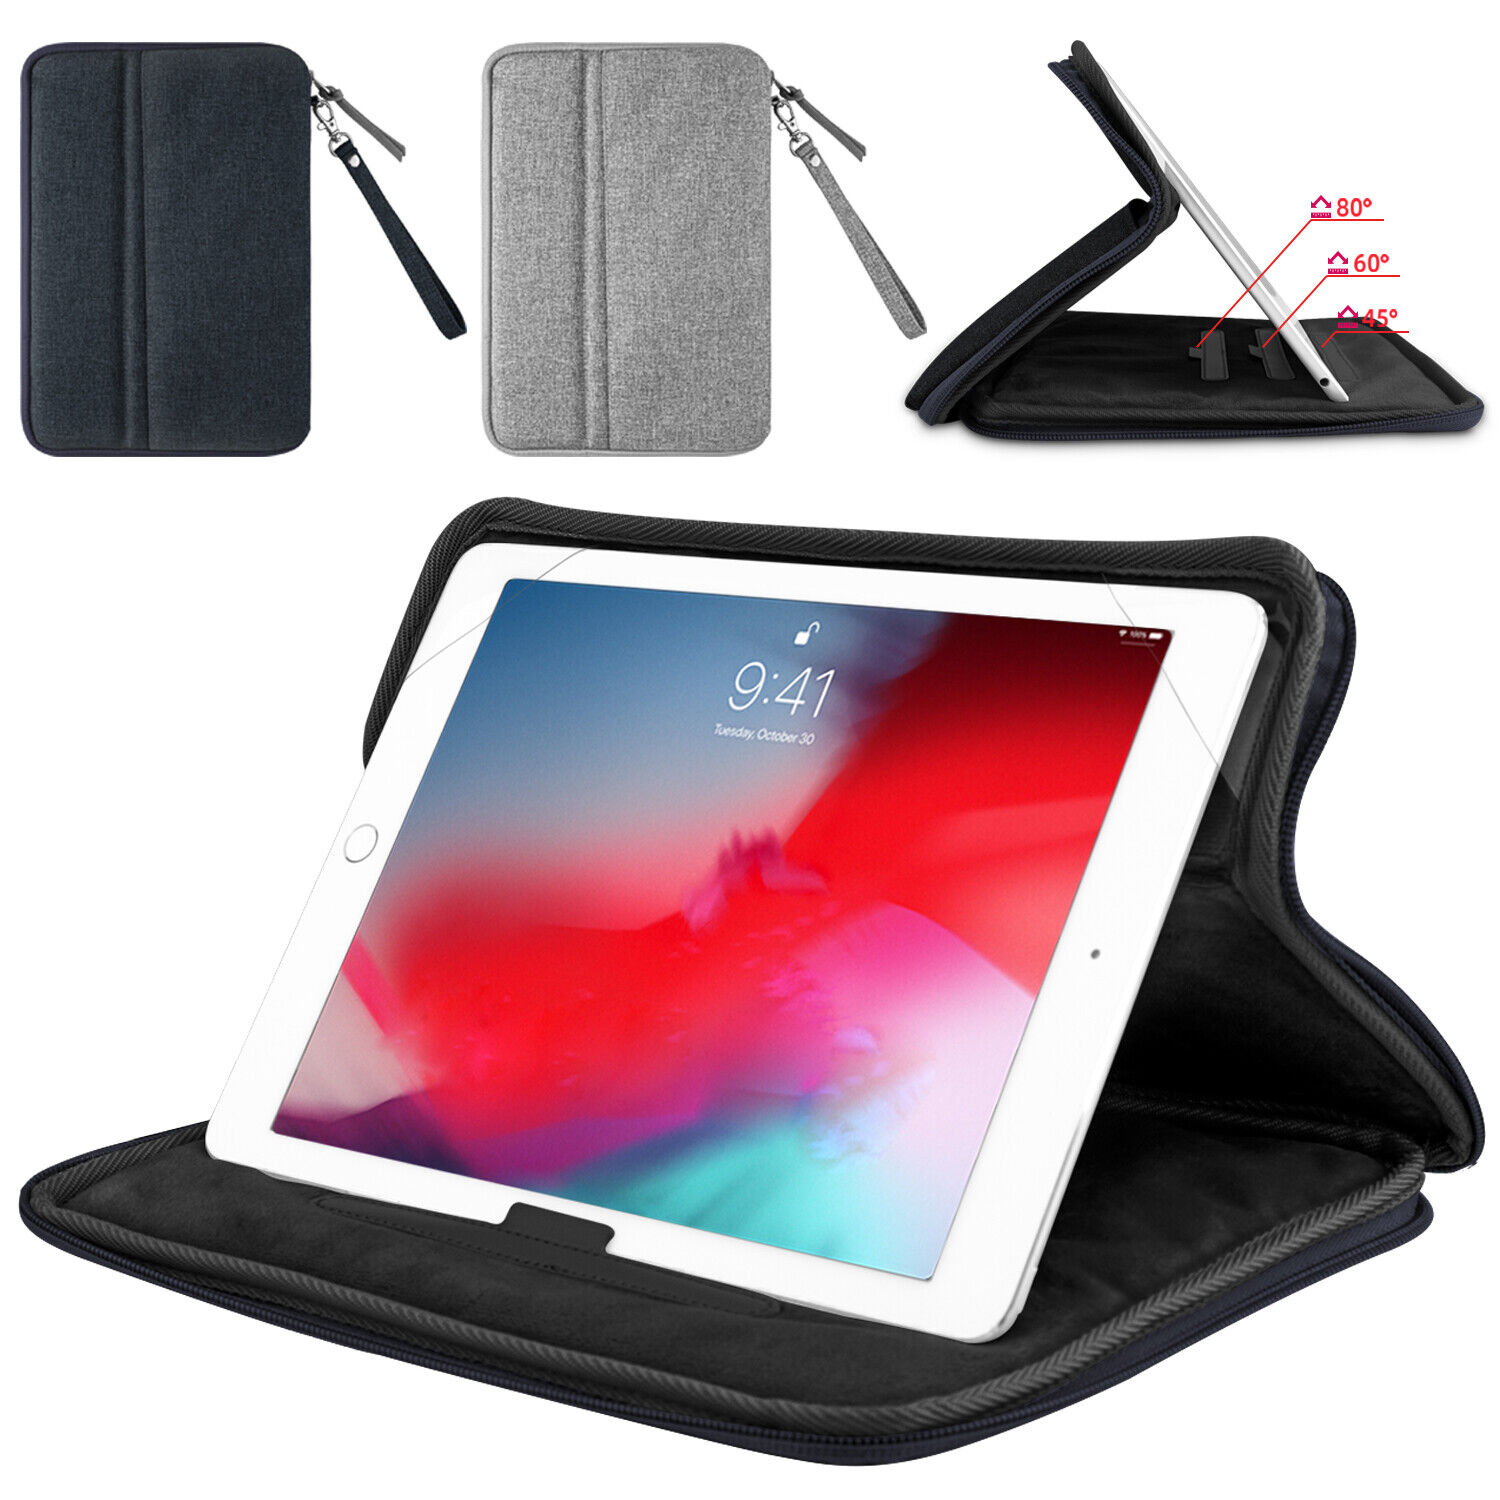 universal-7-11-folio-stand-case-zippered-cover-for-ipad-6th-gen-2018-mini-air